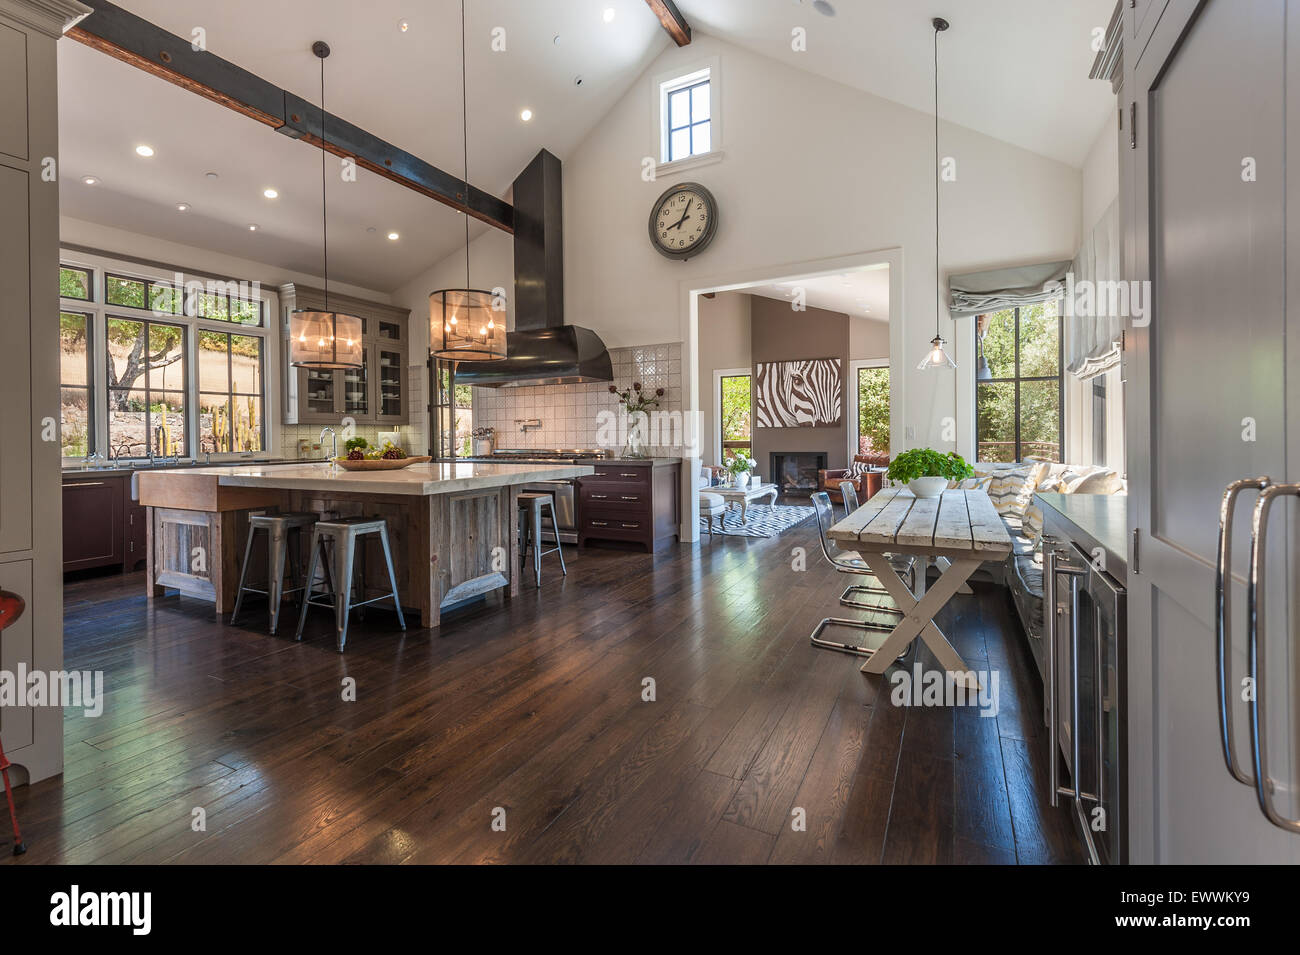 Large, rustic contemporary kitchen with wood-beamed vaulted ceiling - Stock Image